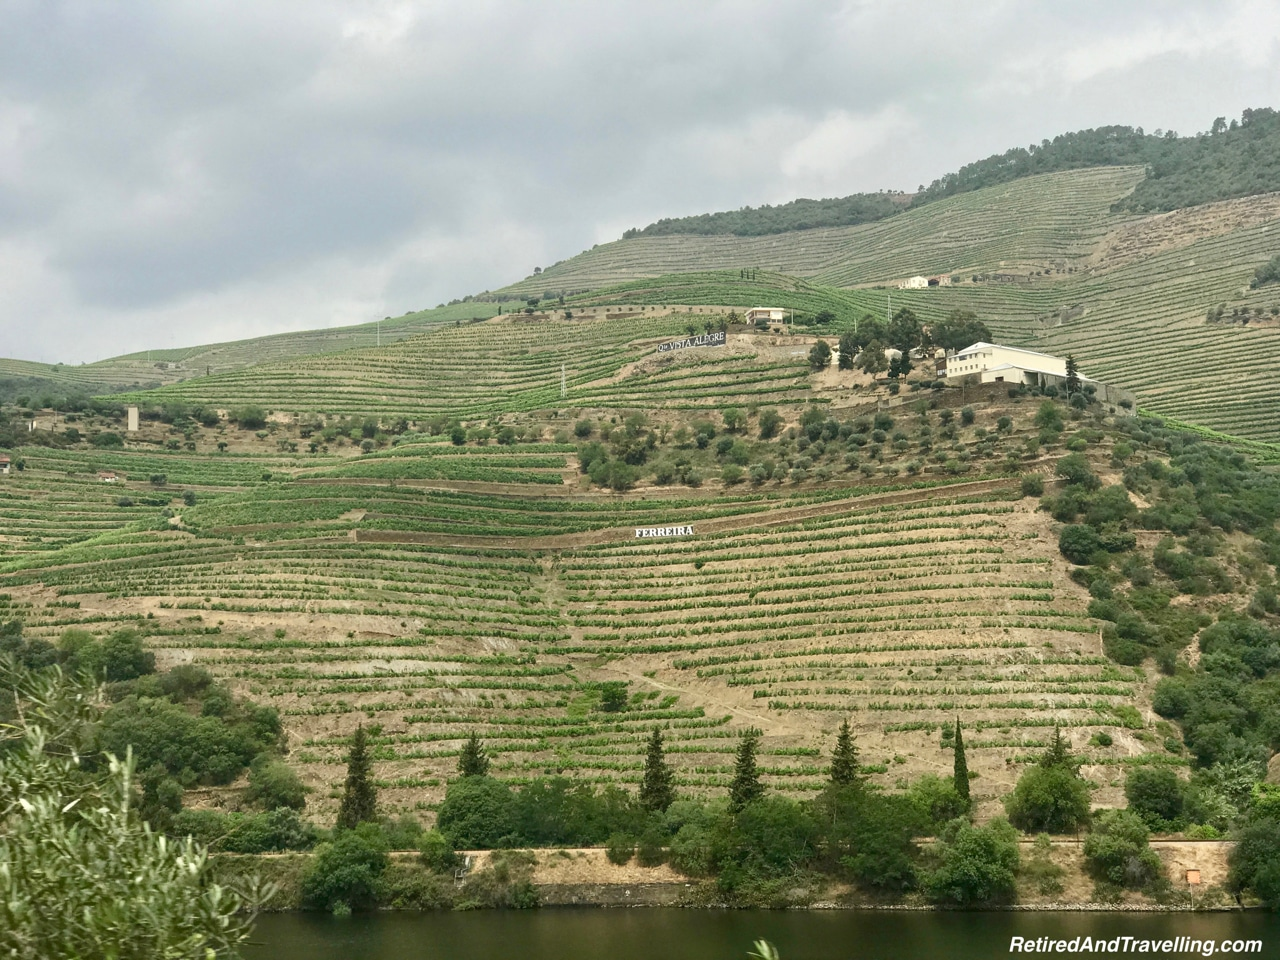 Wineries On N108 Route - Driving Along the Douro River Valley.jpg